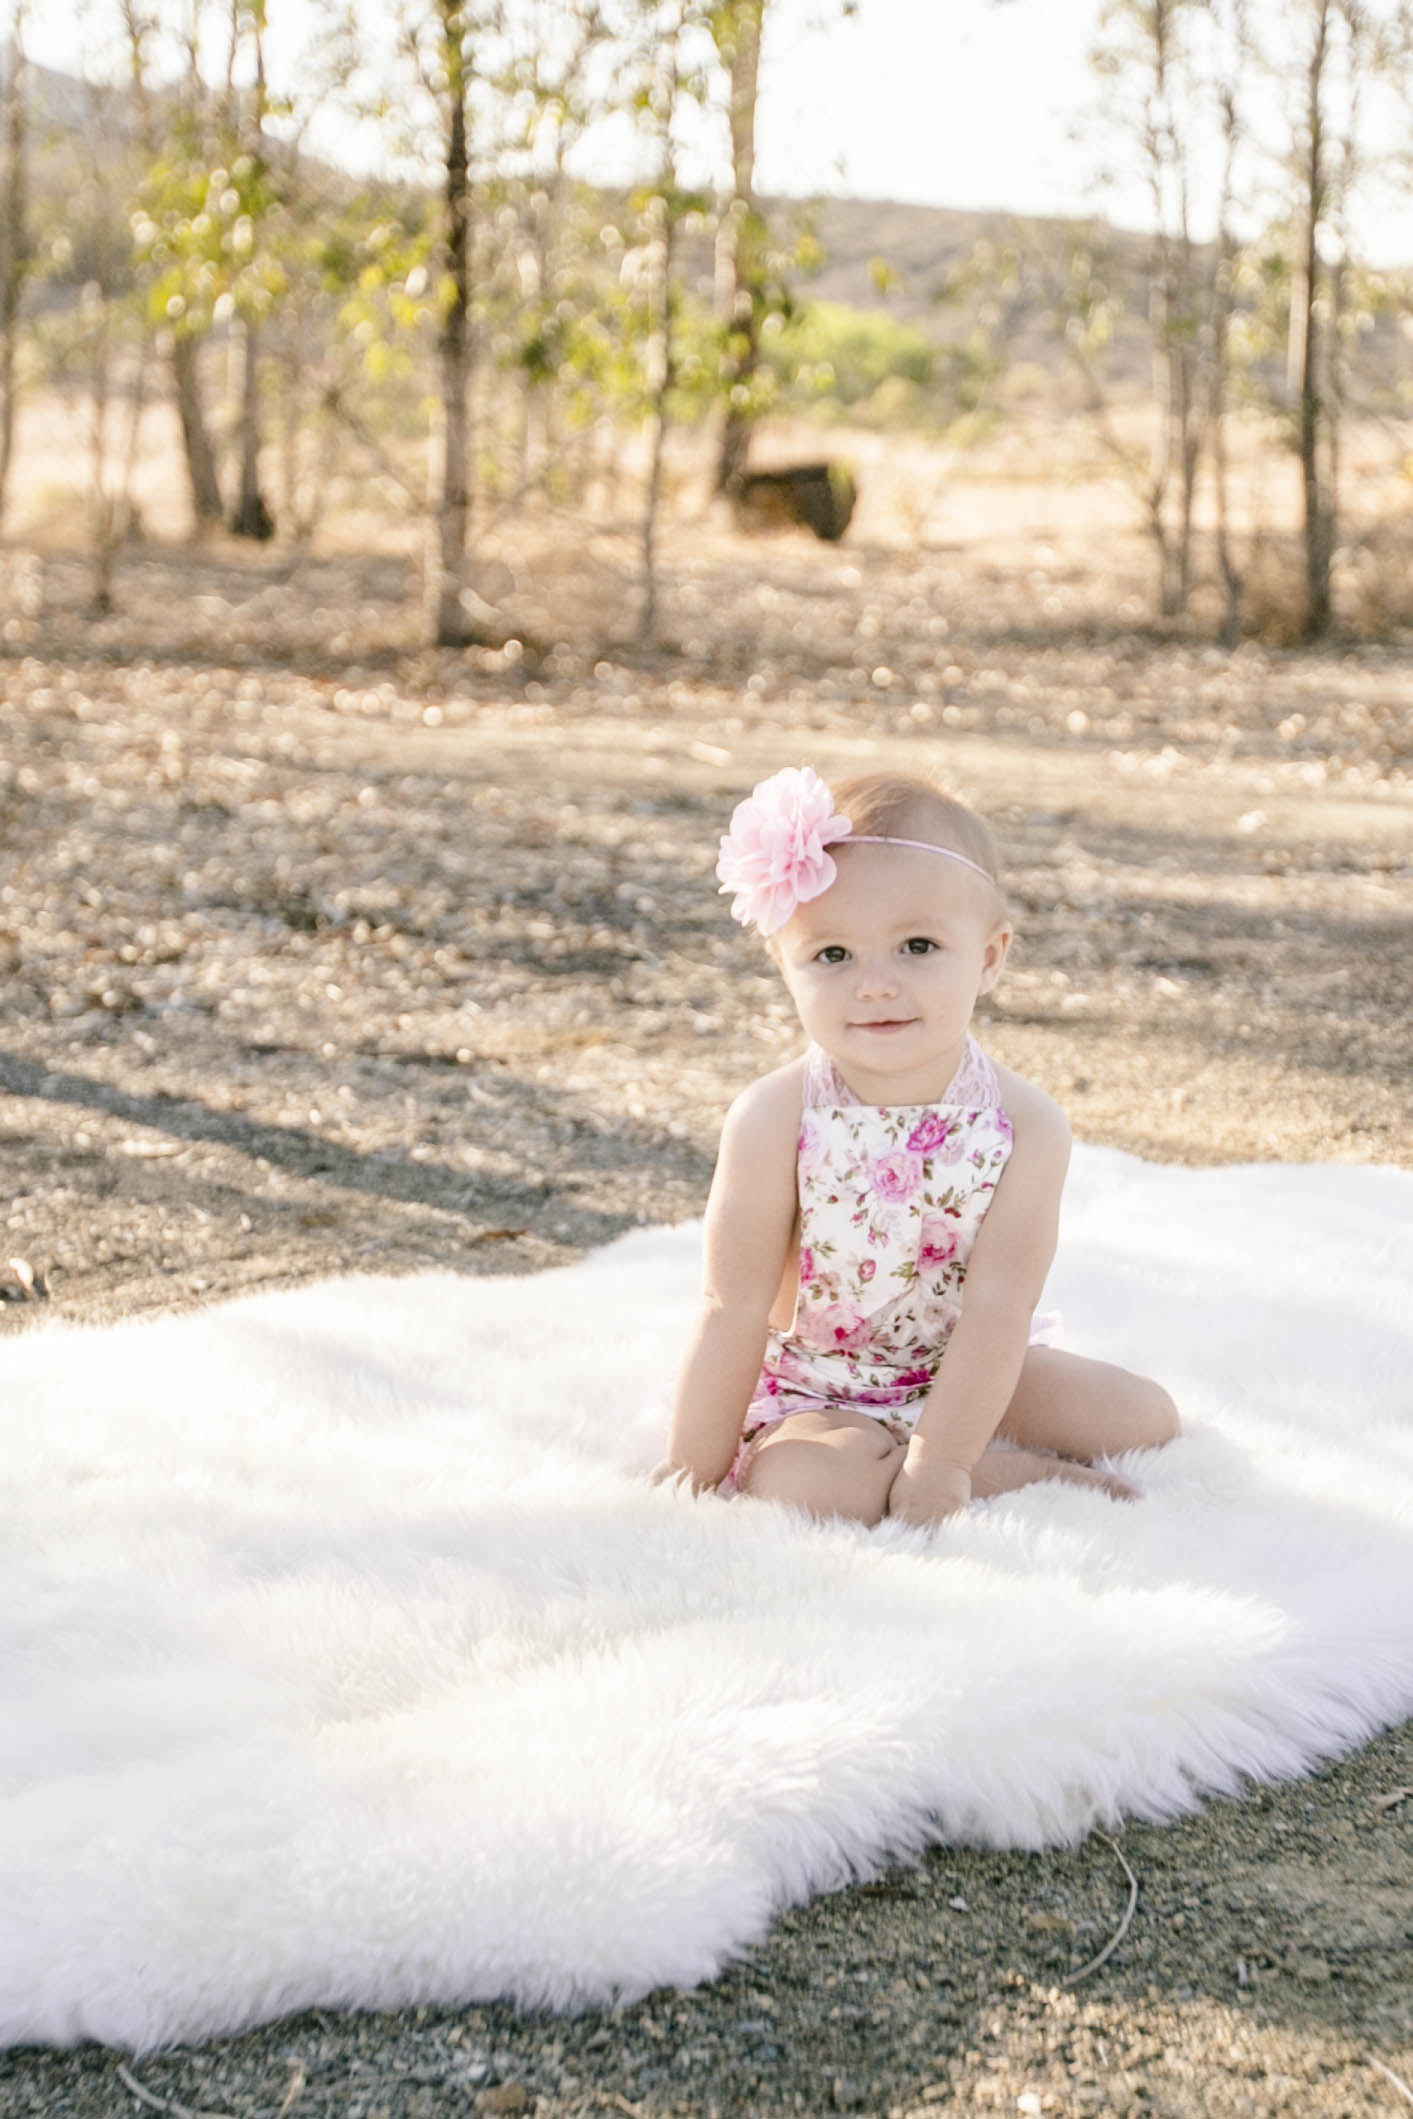 Isla Cutrano1st Bday shoot-3.jpg